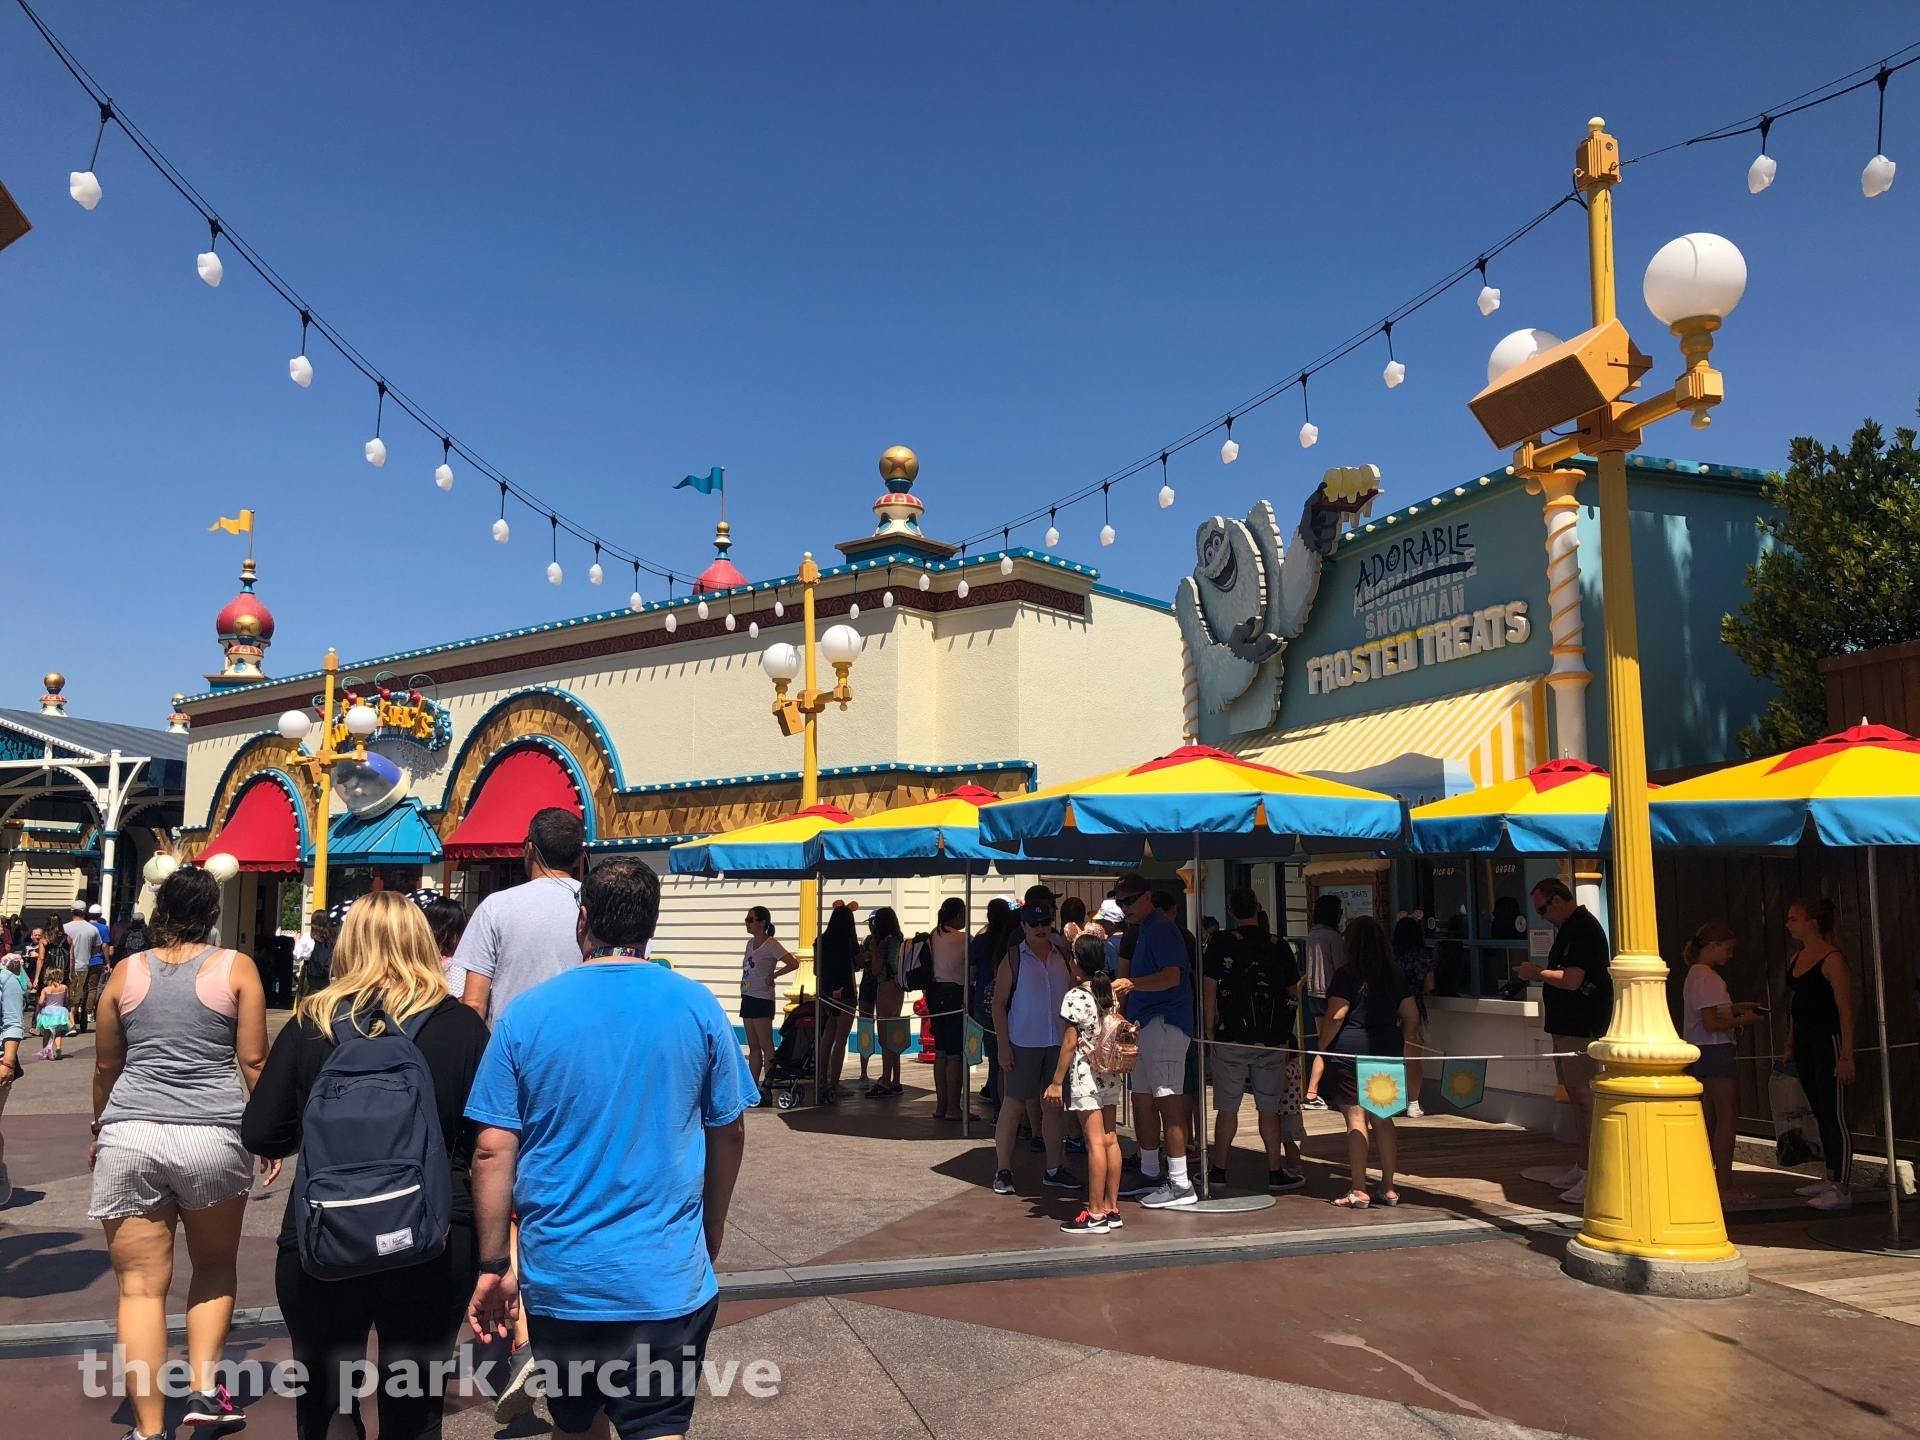 Pixar Pier at Disney California Adventure